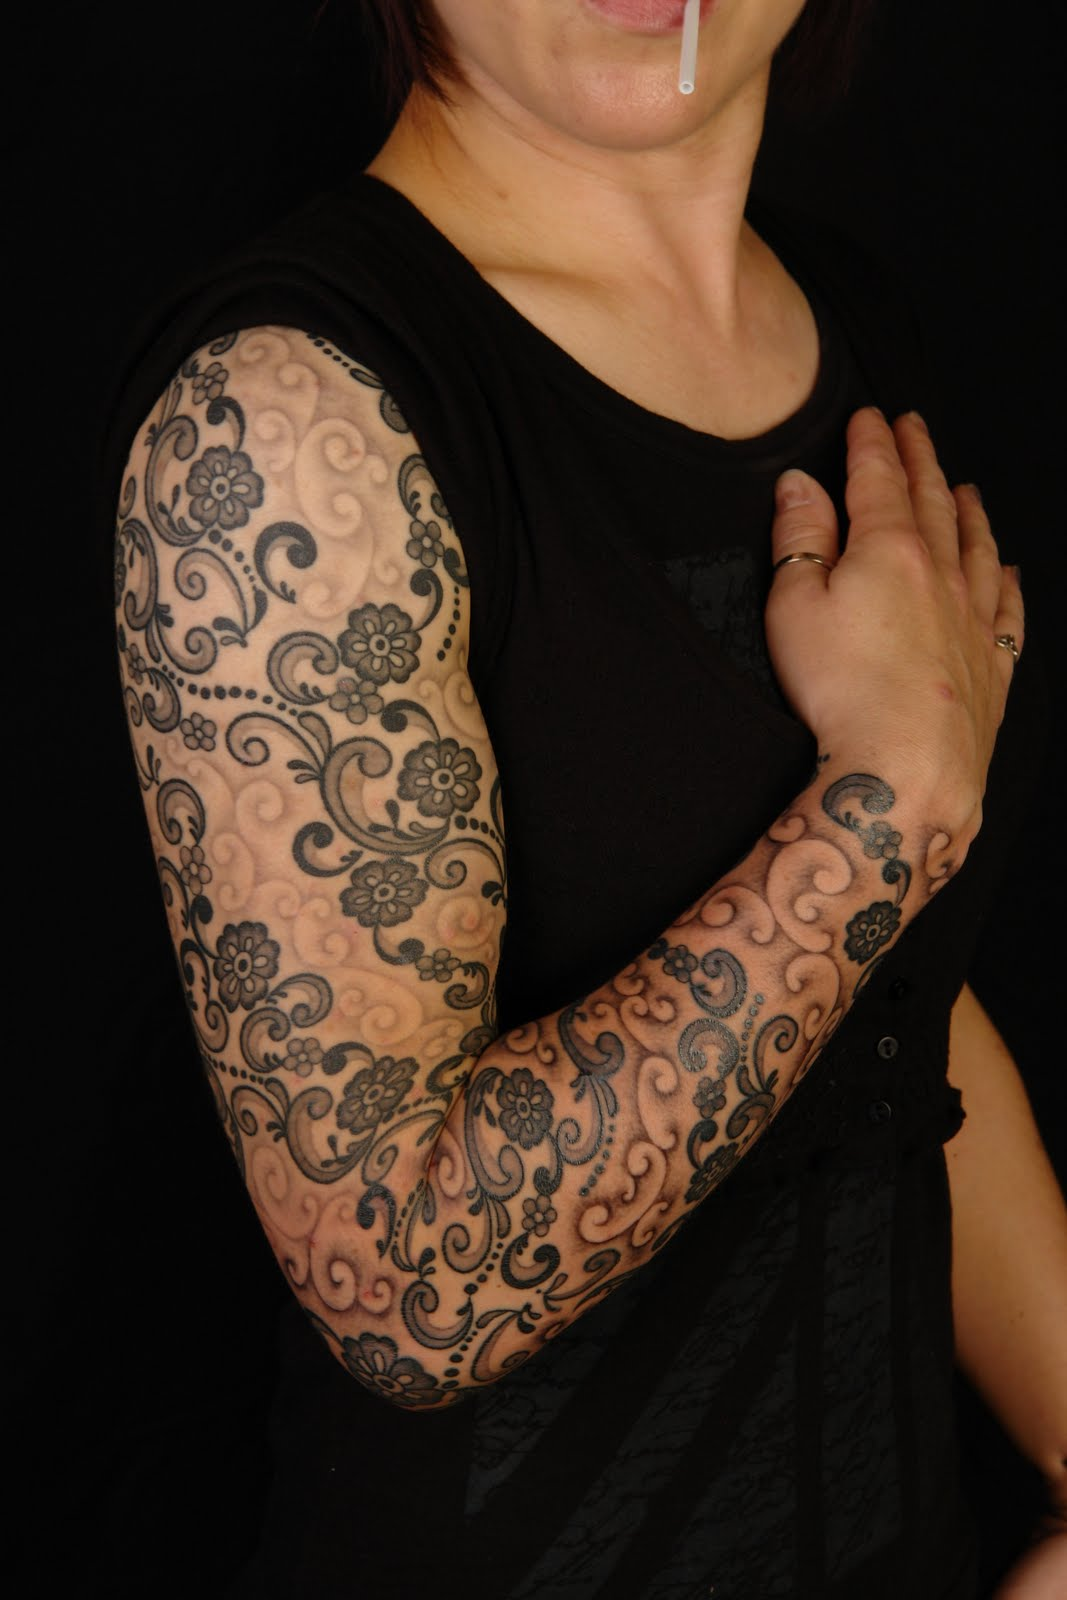 Lace Tattoo Designs for Women